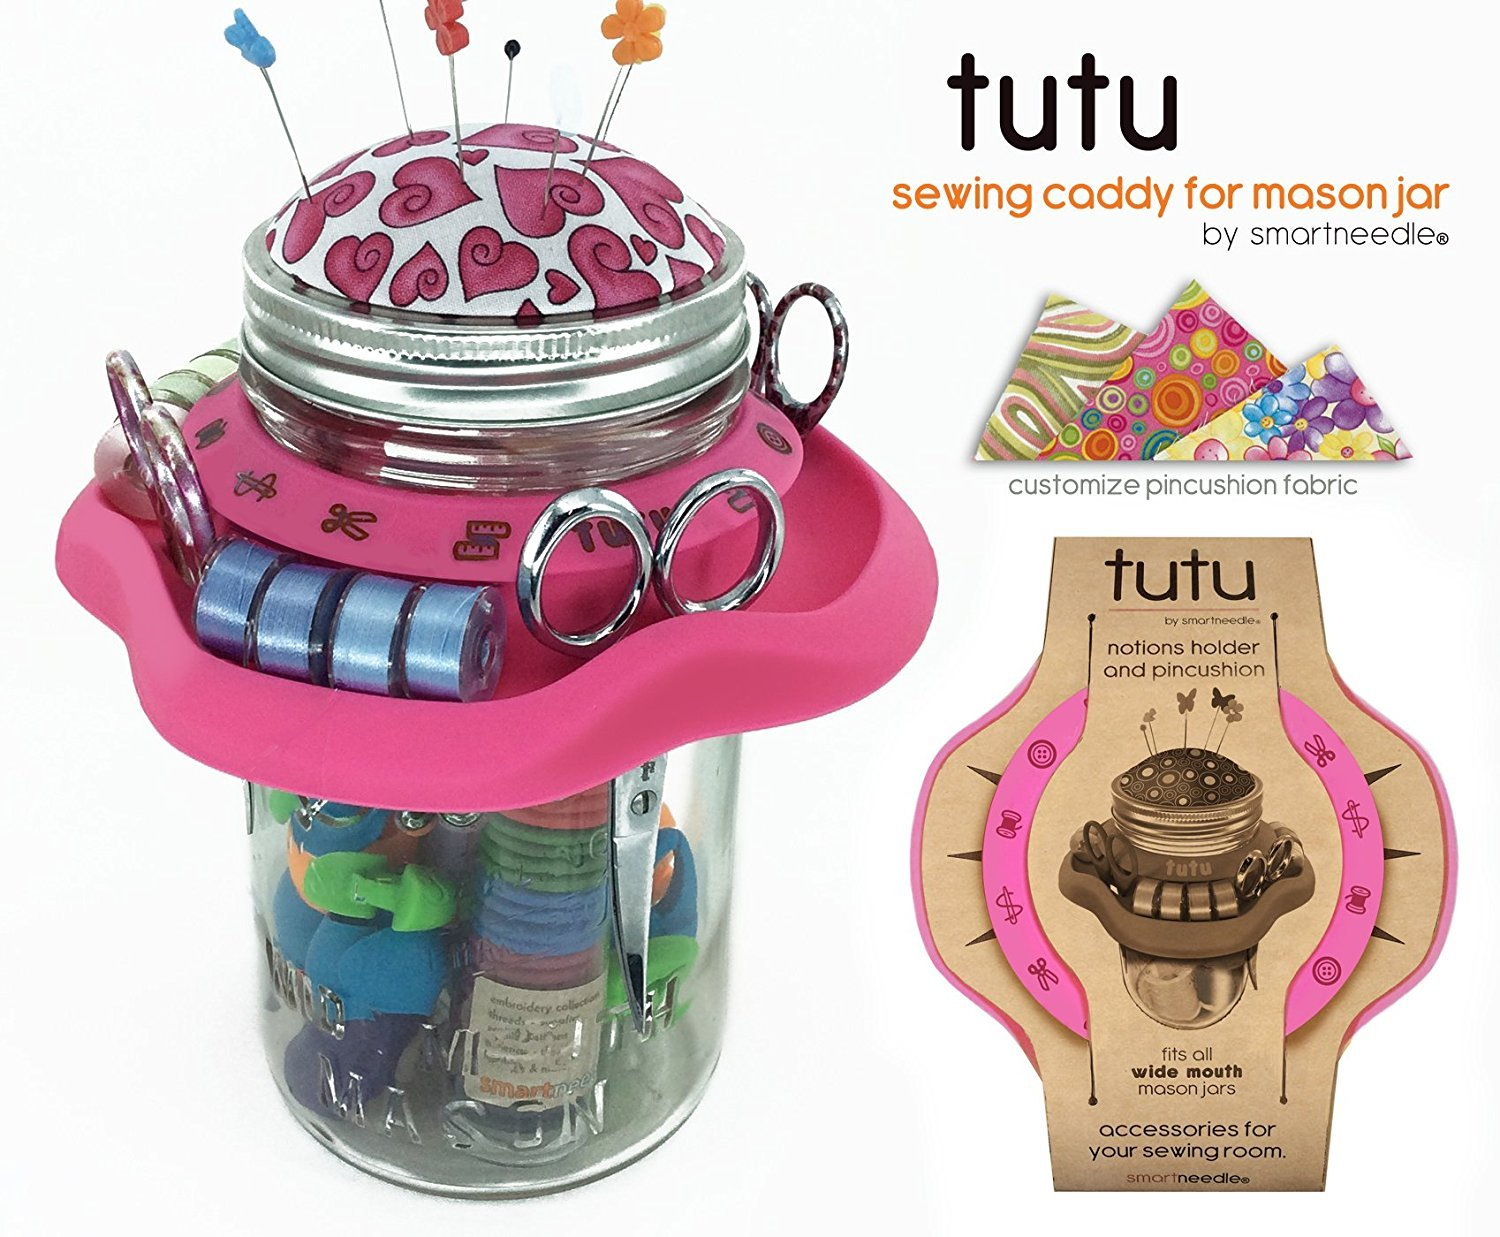 Tutu notions holder and Pin cusion for wide mouth mason jars - Pink